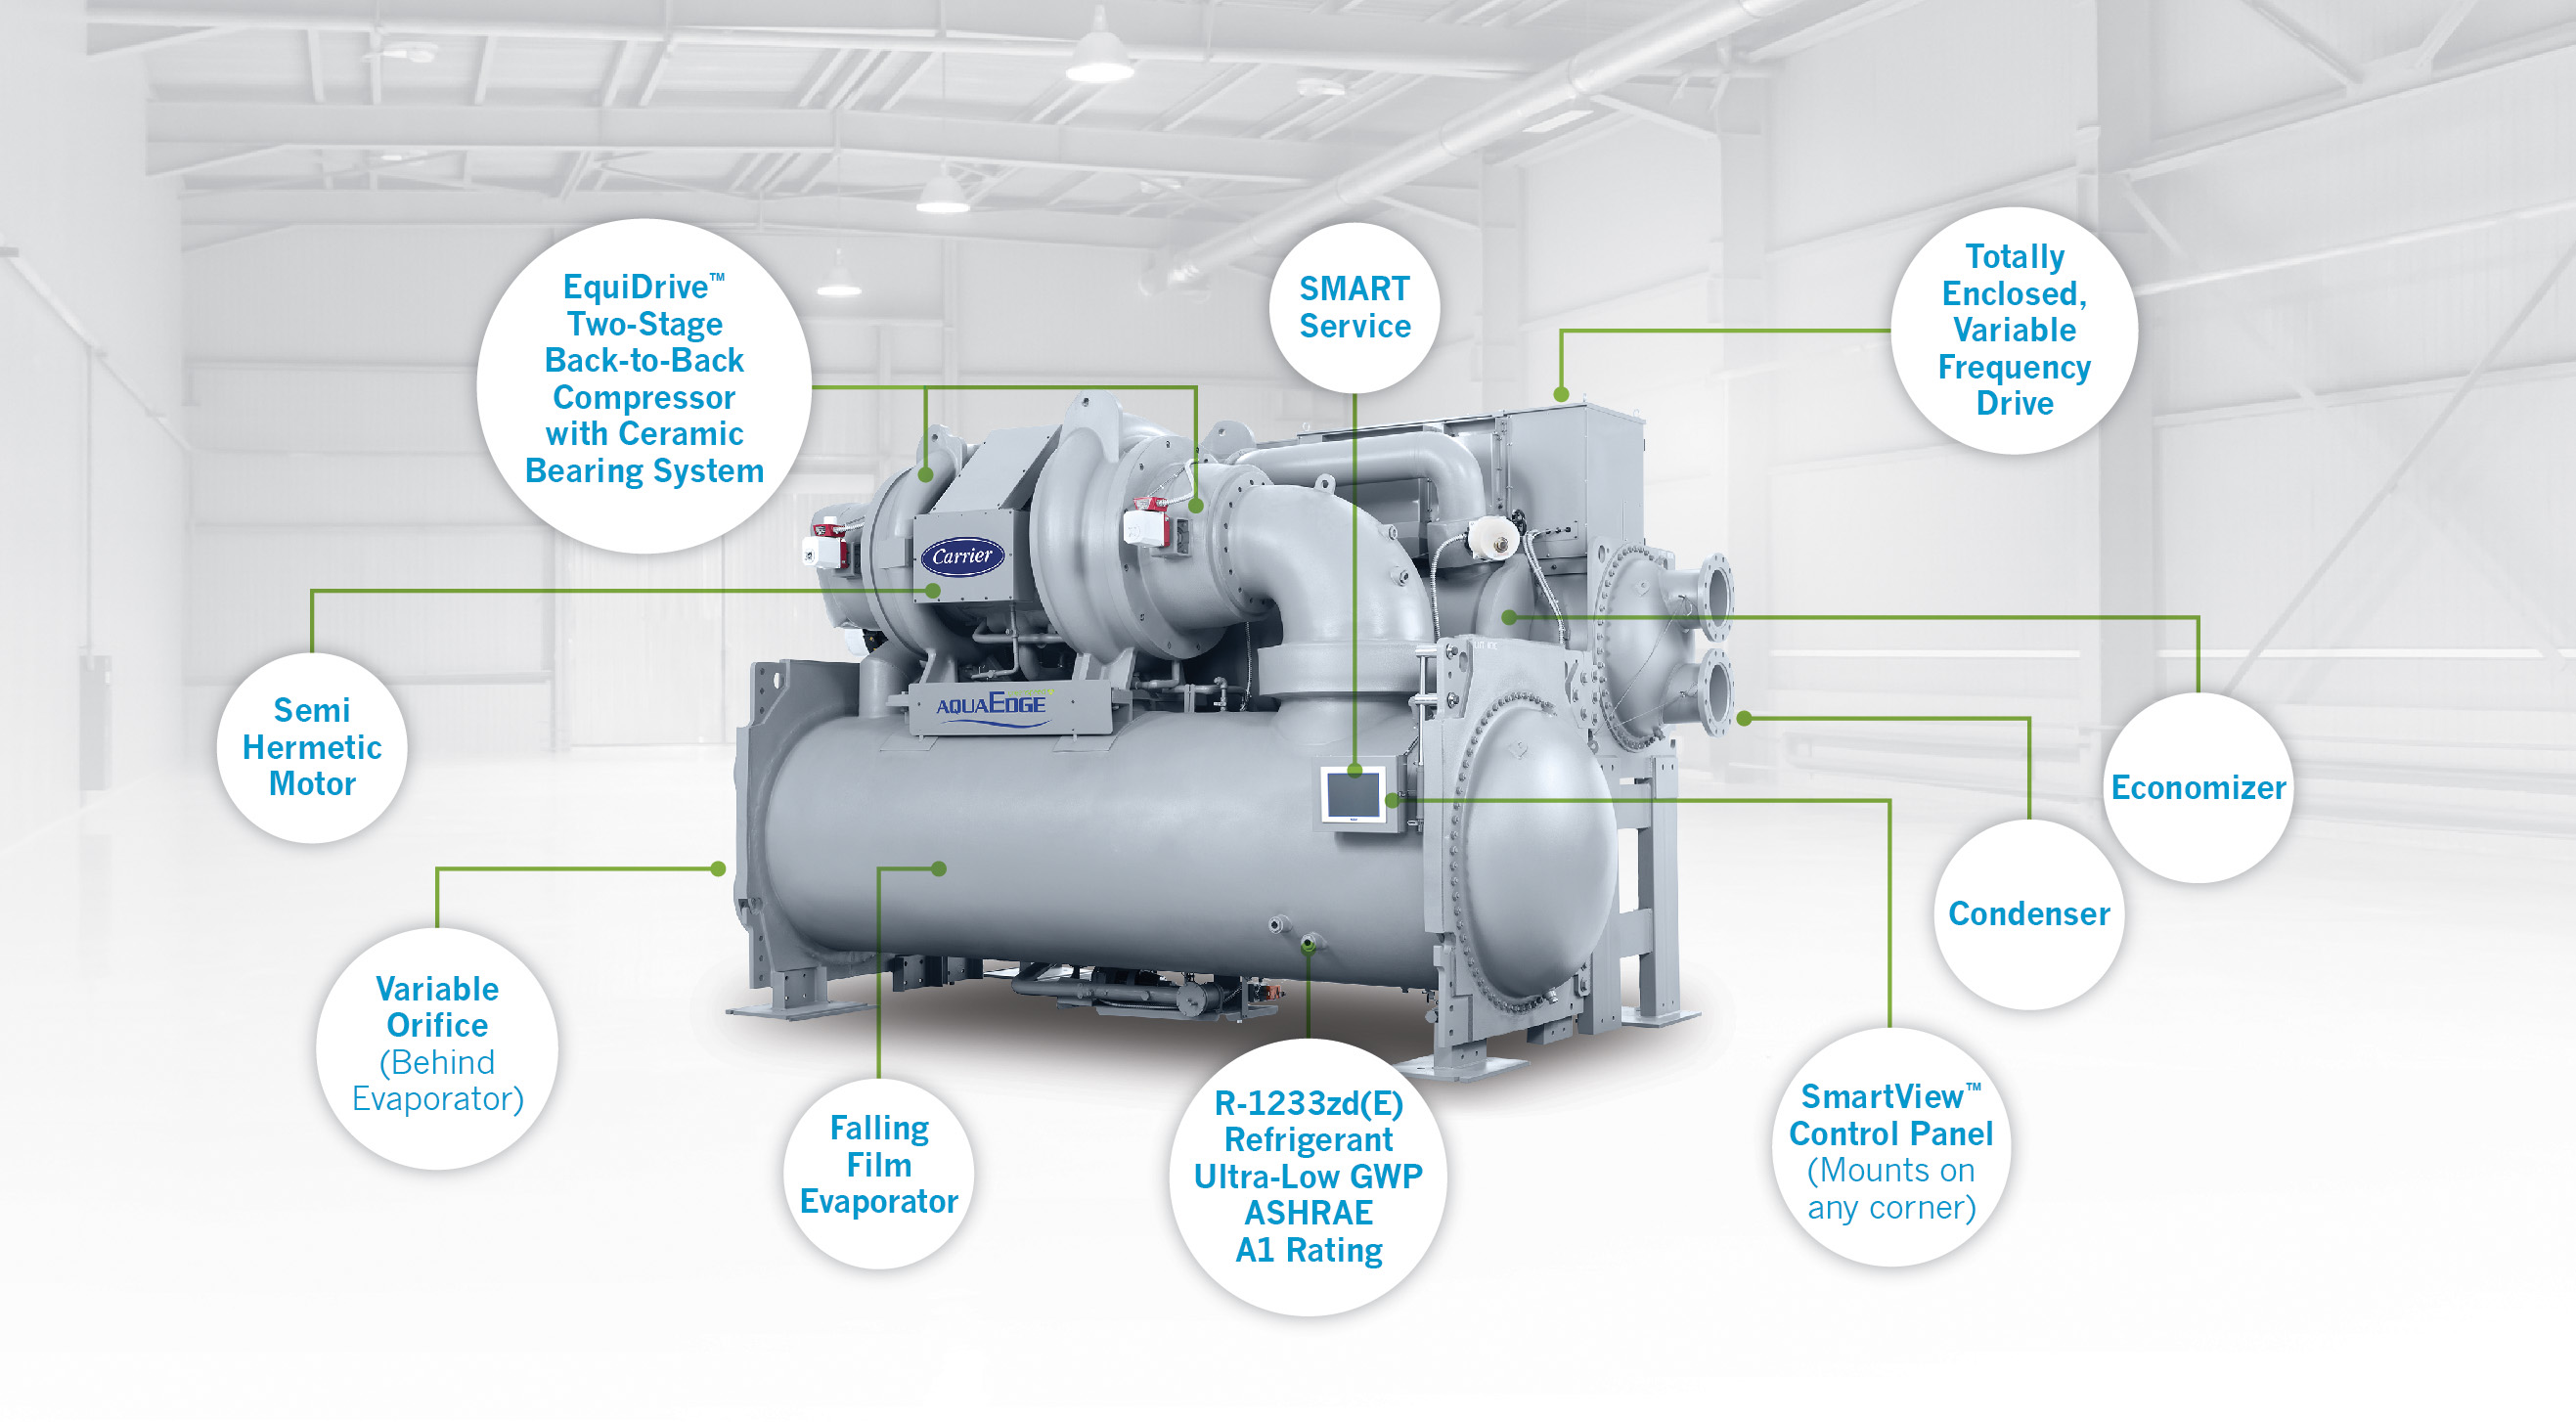 The AquaEdge 19DV was designed to minimize environmental impact while also addressing varying heating and cooling needs. It has a number of innovative features that set it apart from other water-cooled chillers available today.